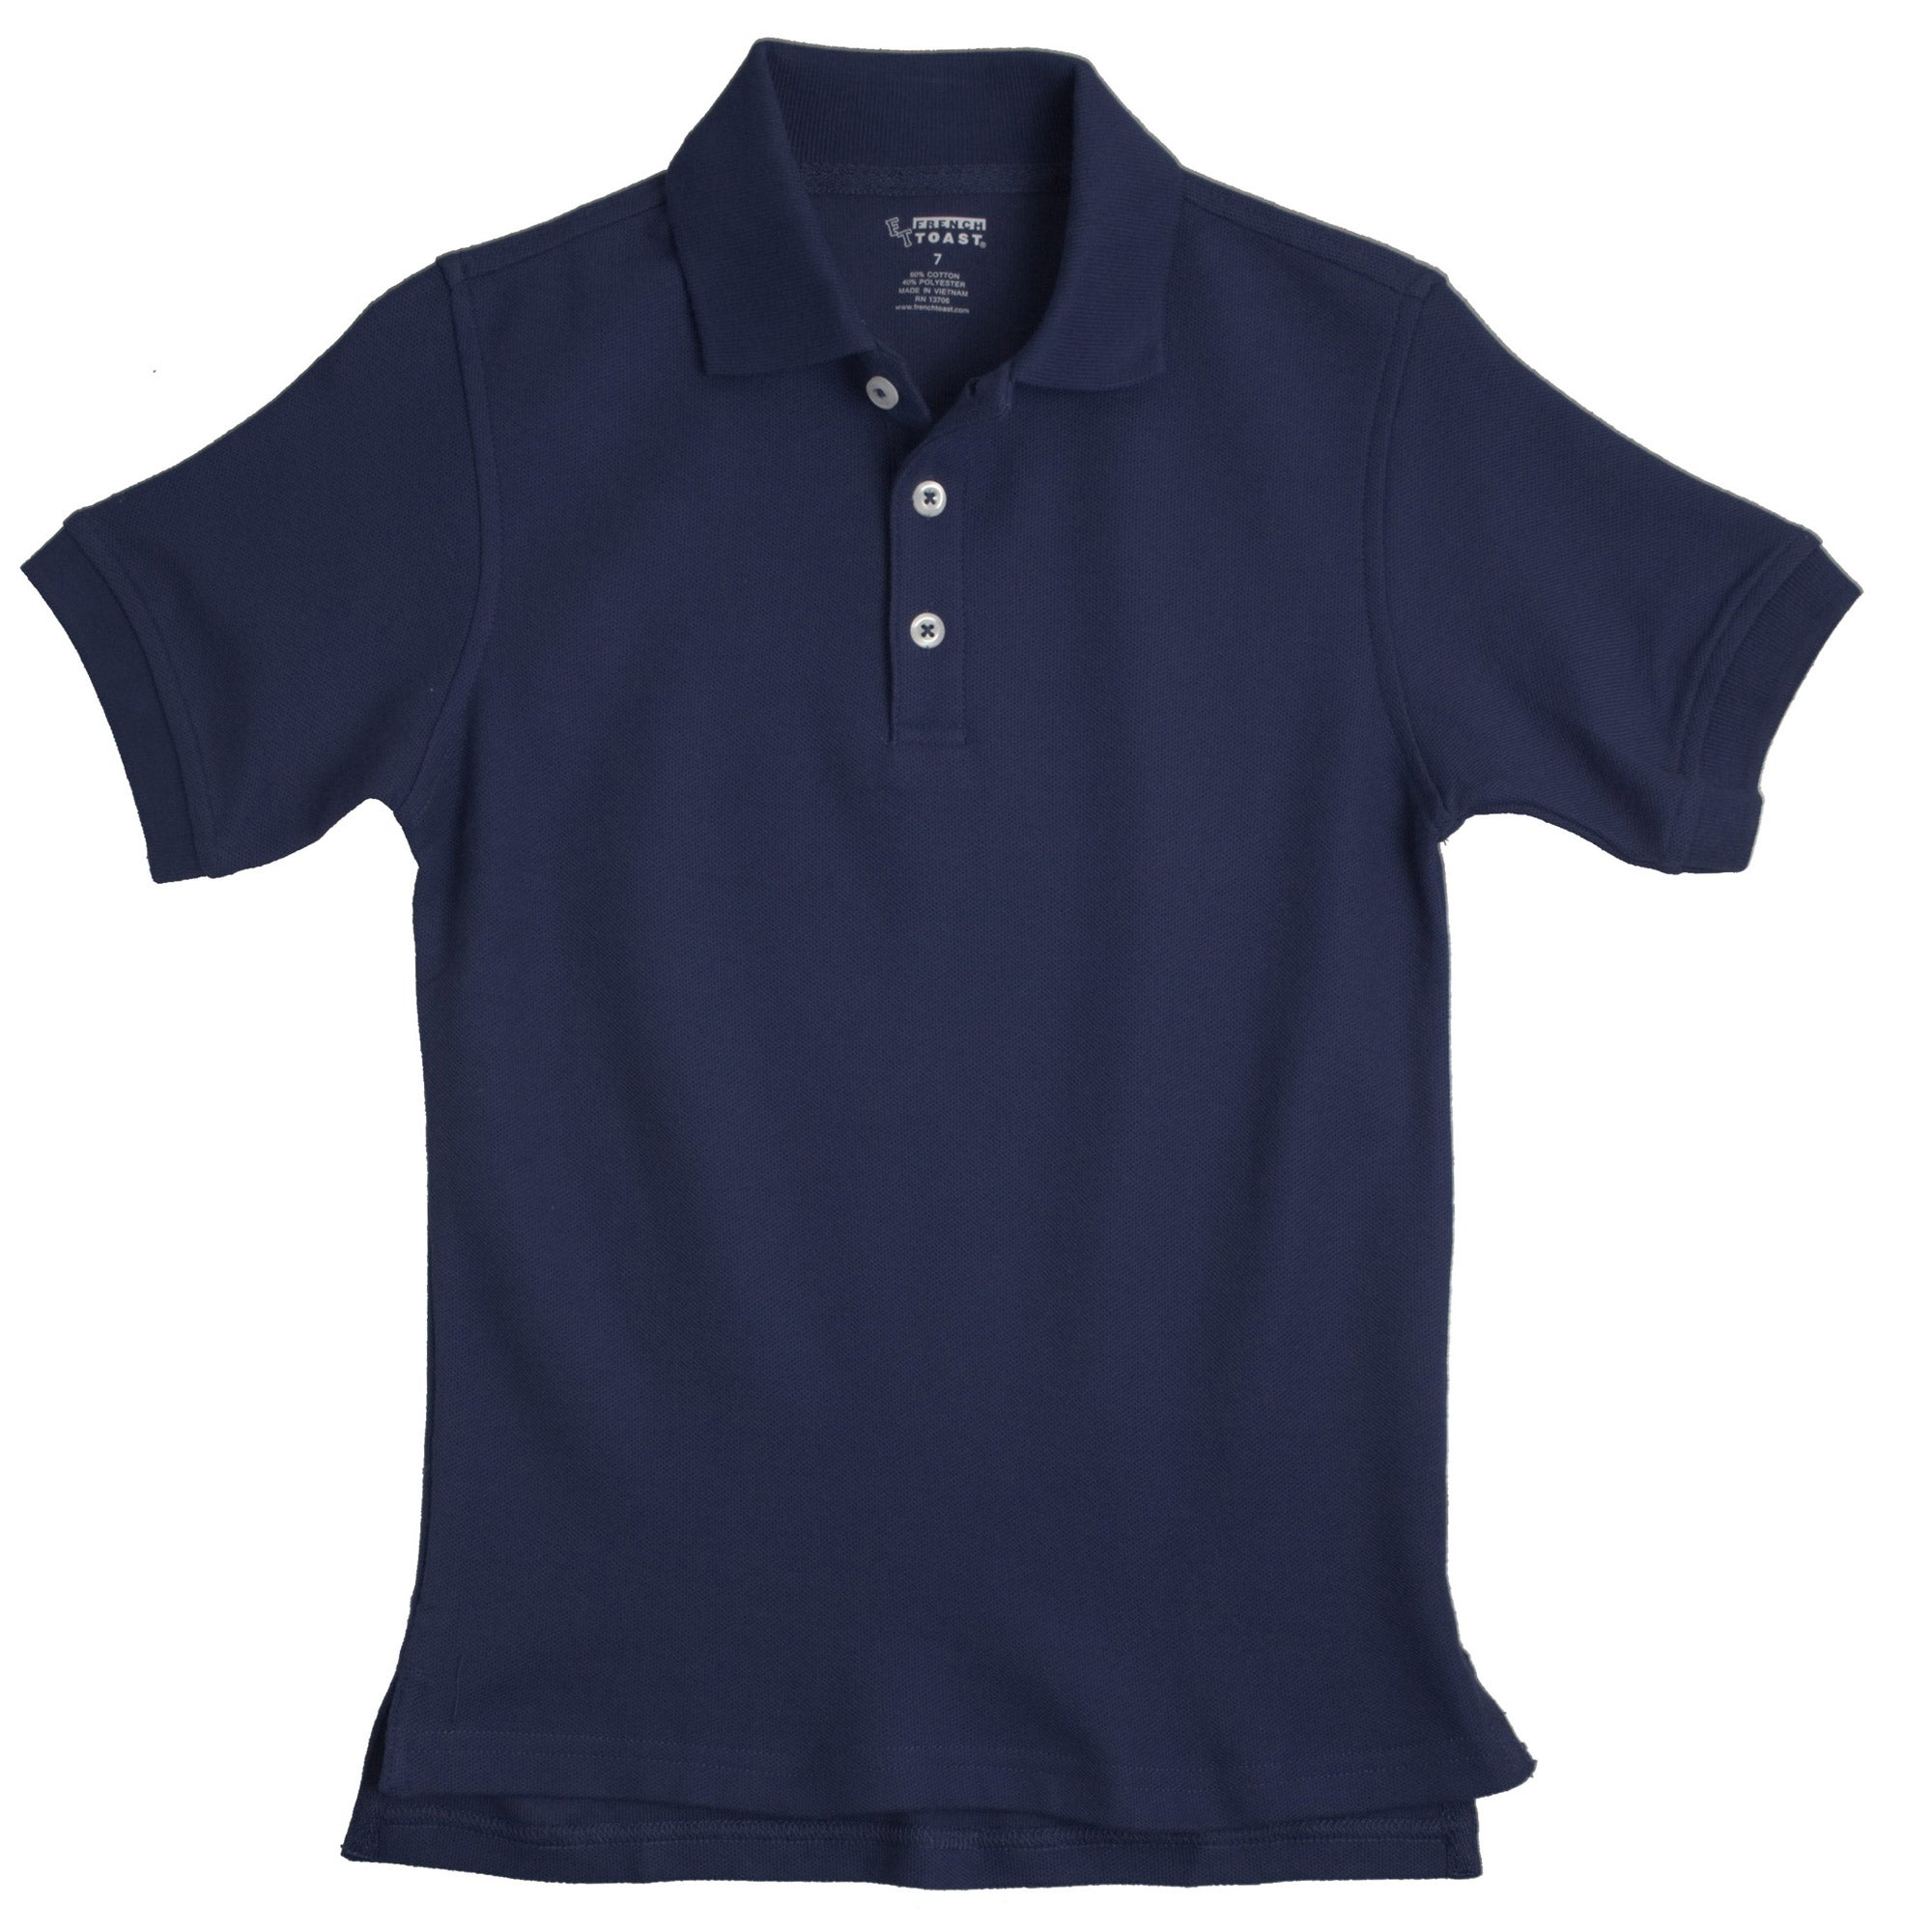 French Toast Boy's School Uniform Navy Polos Size 6 (Set of 2)